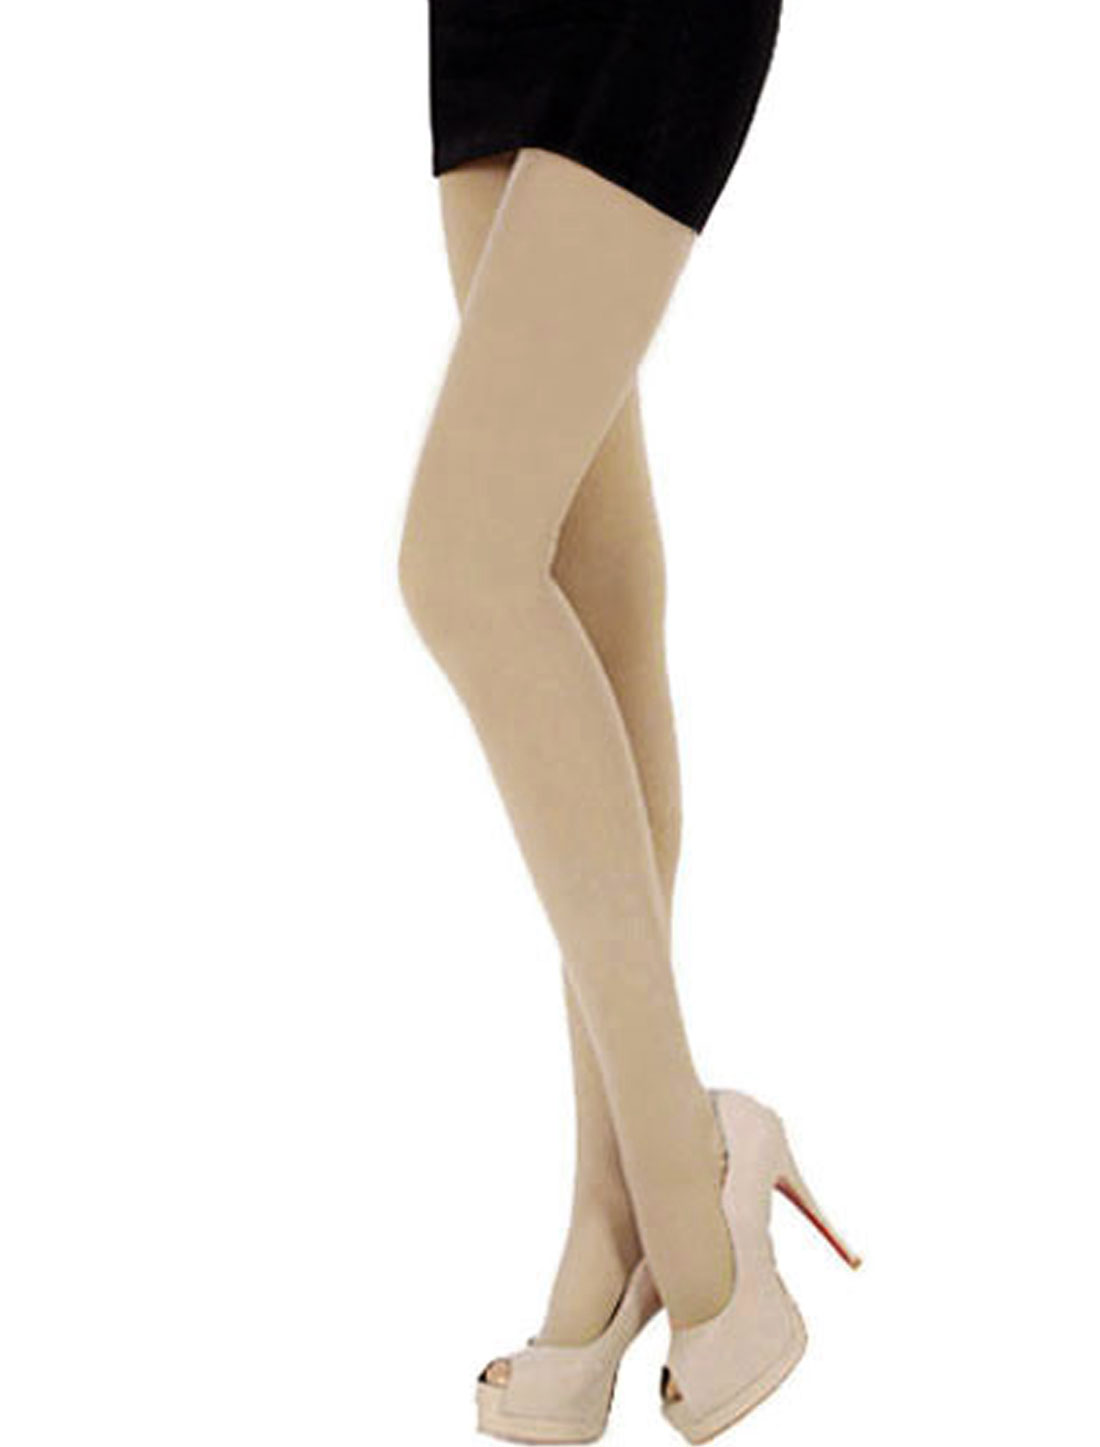 Lady Stretchy Tights Leggings Footed Formfitting Pantyhose Stockings Beige /XS (US 0)